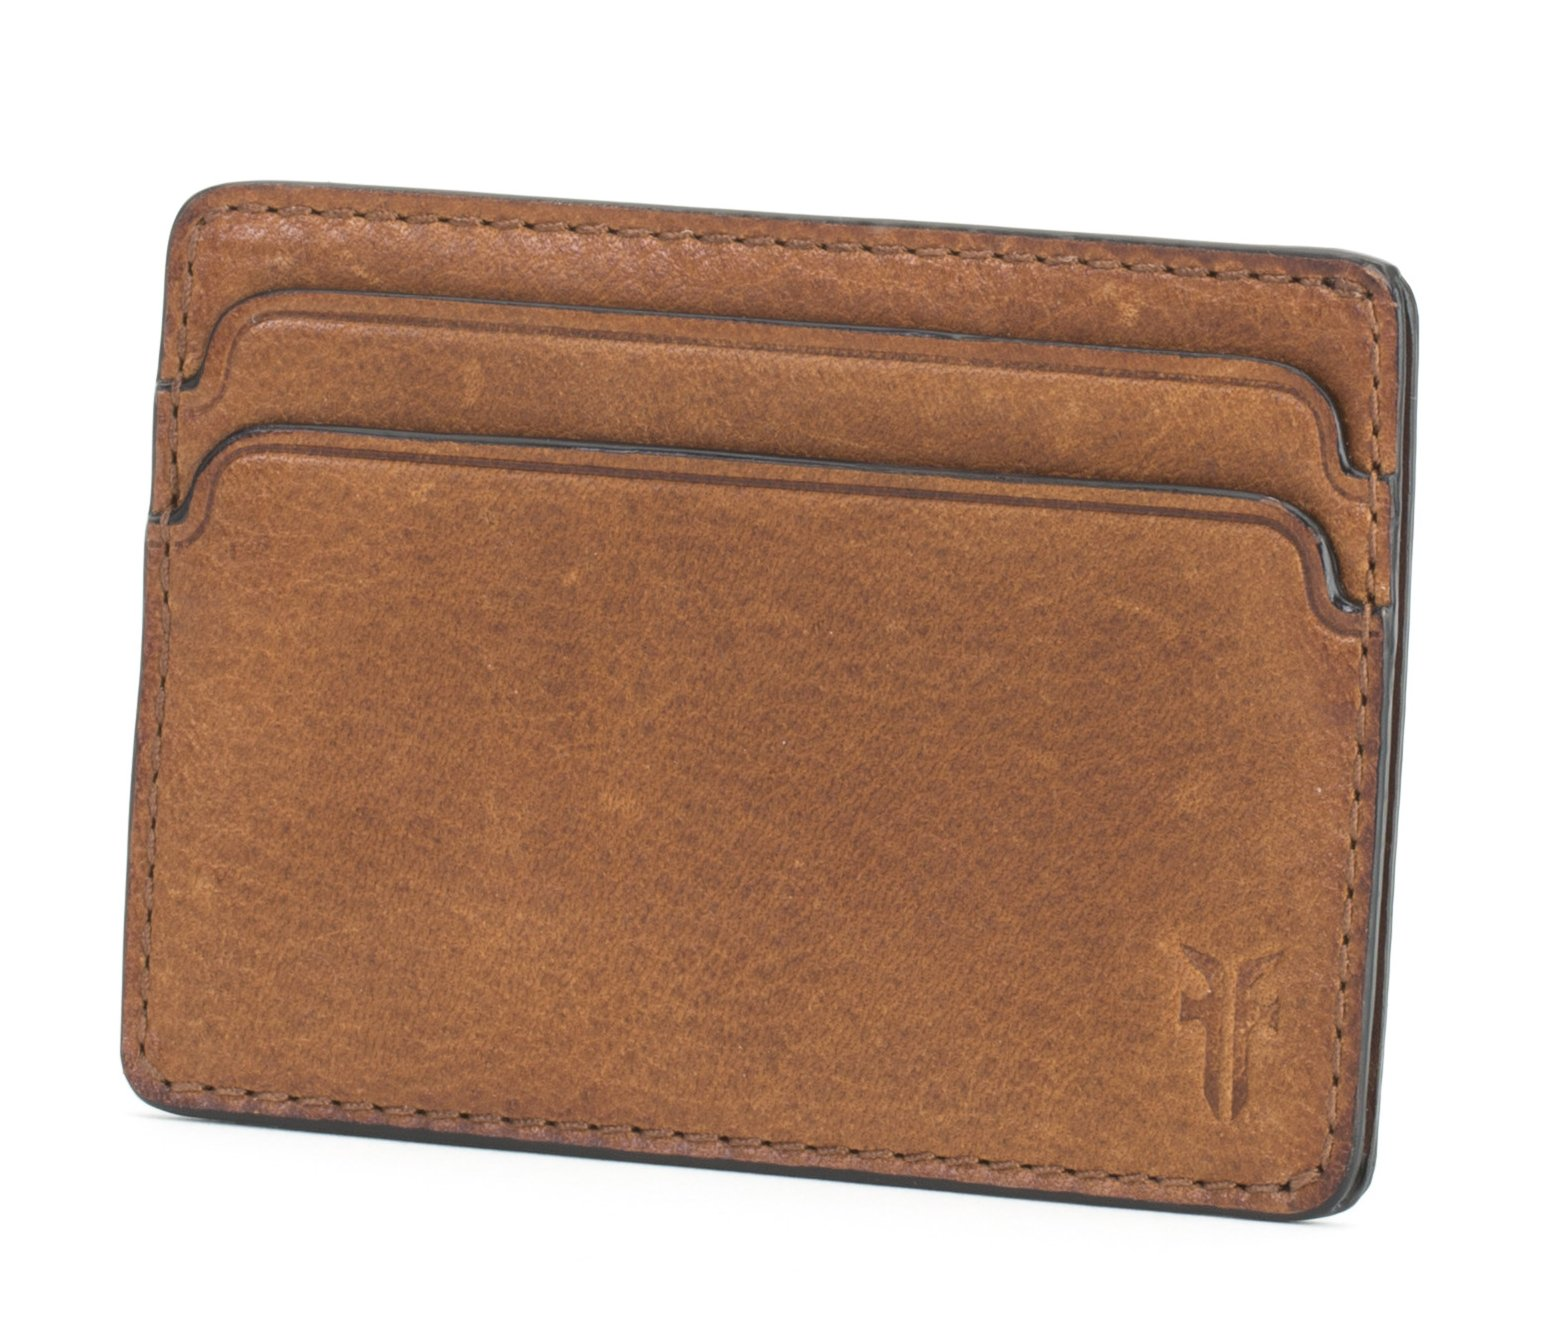 FRYE Men's Oliver Id Card Case, Cognac, One Size